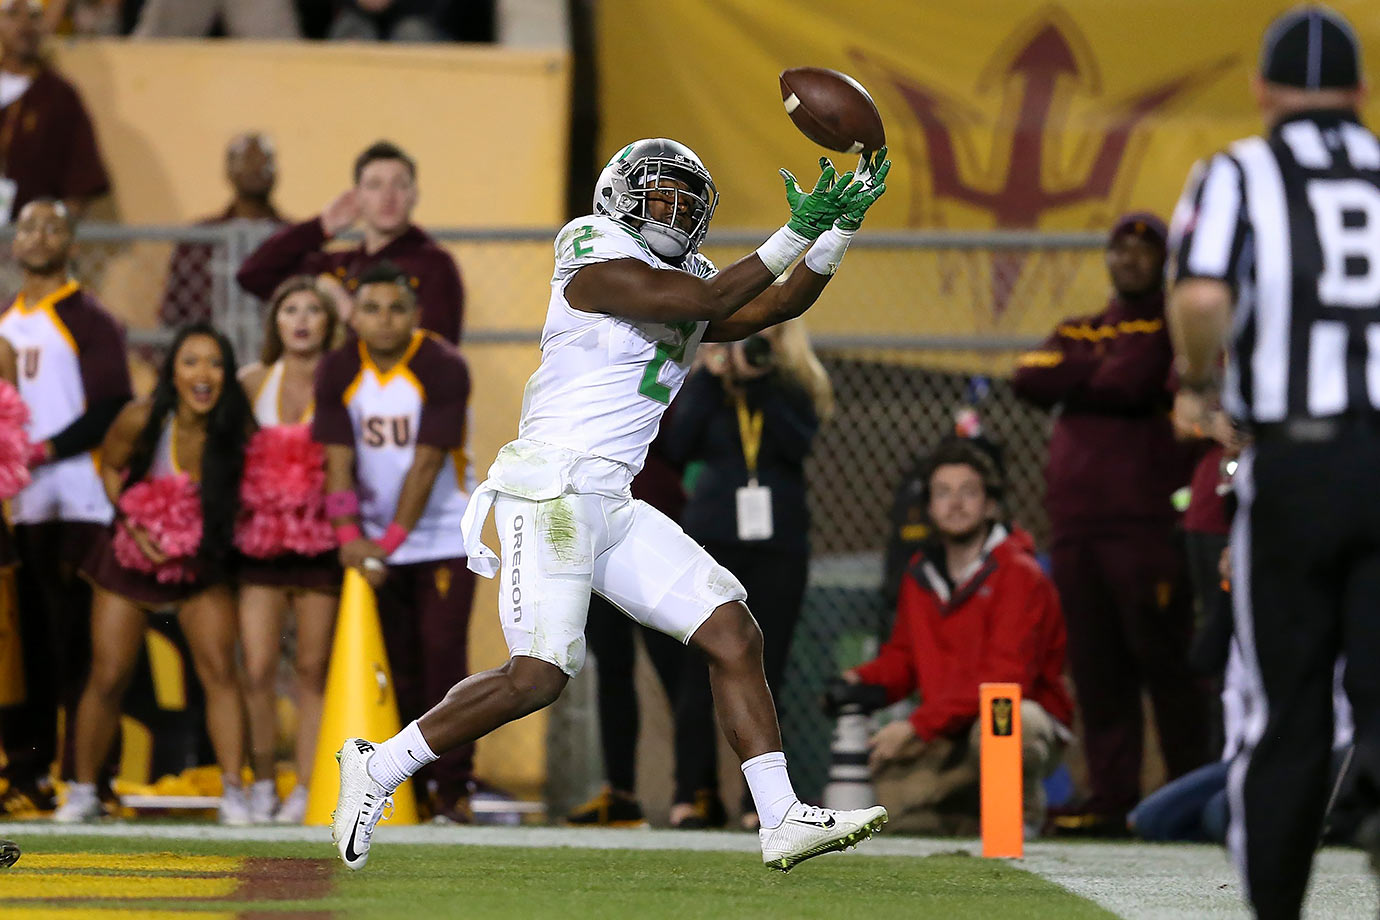 The Ducks edged Arizona State in a game in which the two teams combined for more than 1,200 yards of total offense, 15 touchdowns, three overtimes and a controversial conclusion. It's safe to assume that anyone who elected to tune in for this Thursday night thriller was not disappointed.